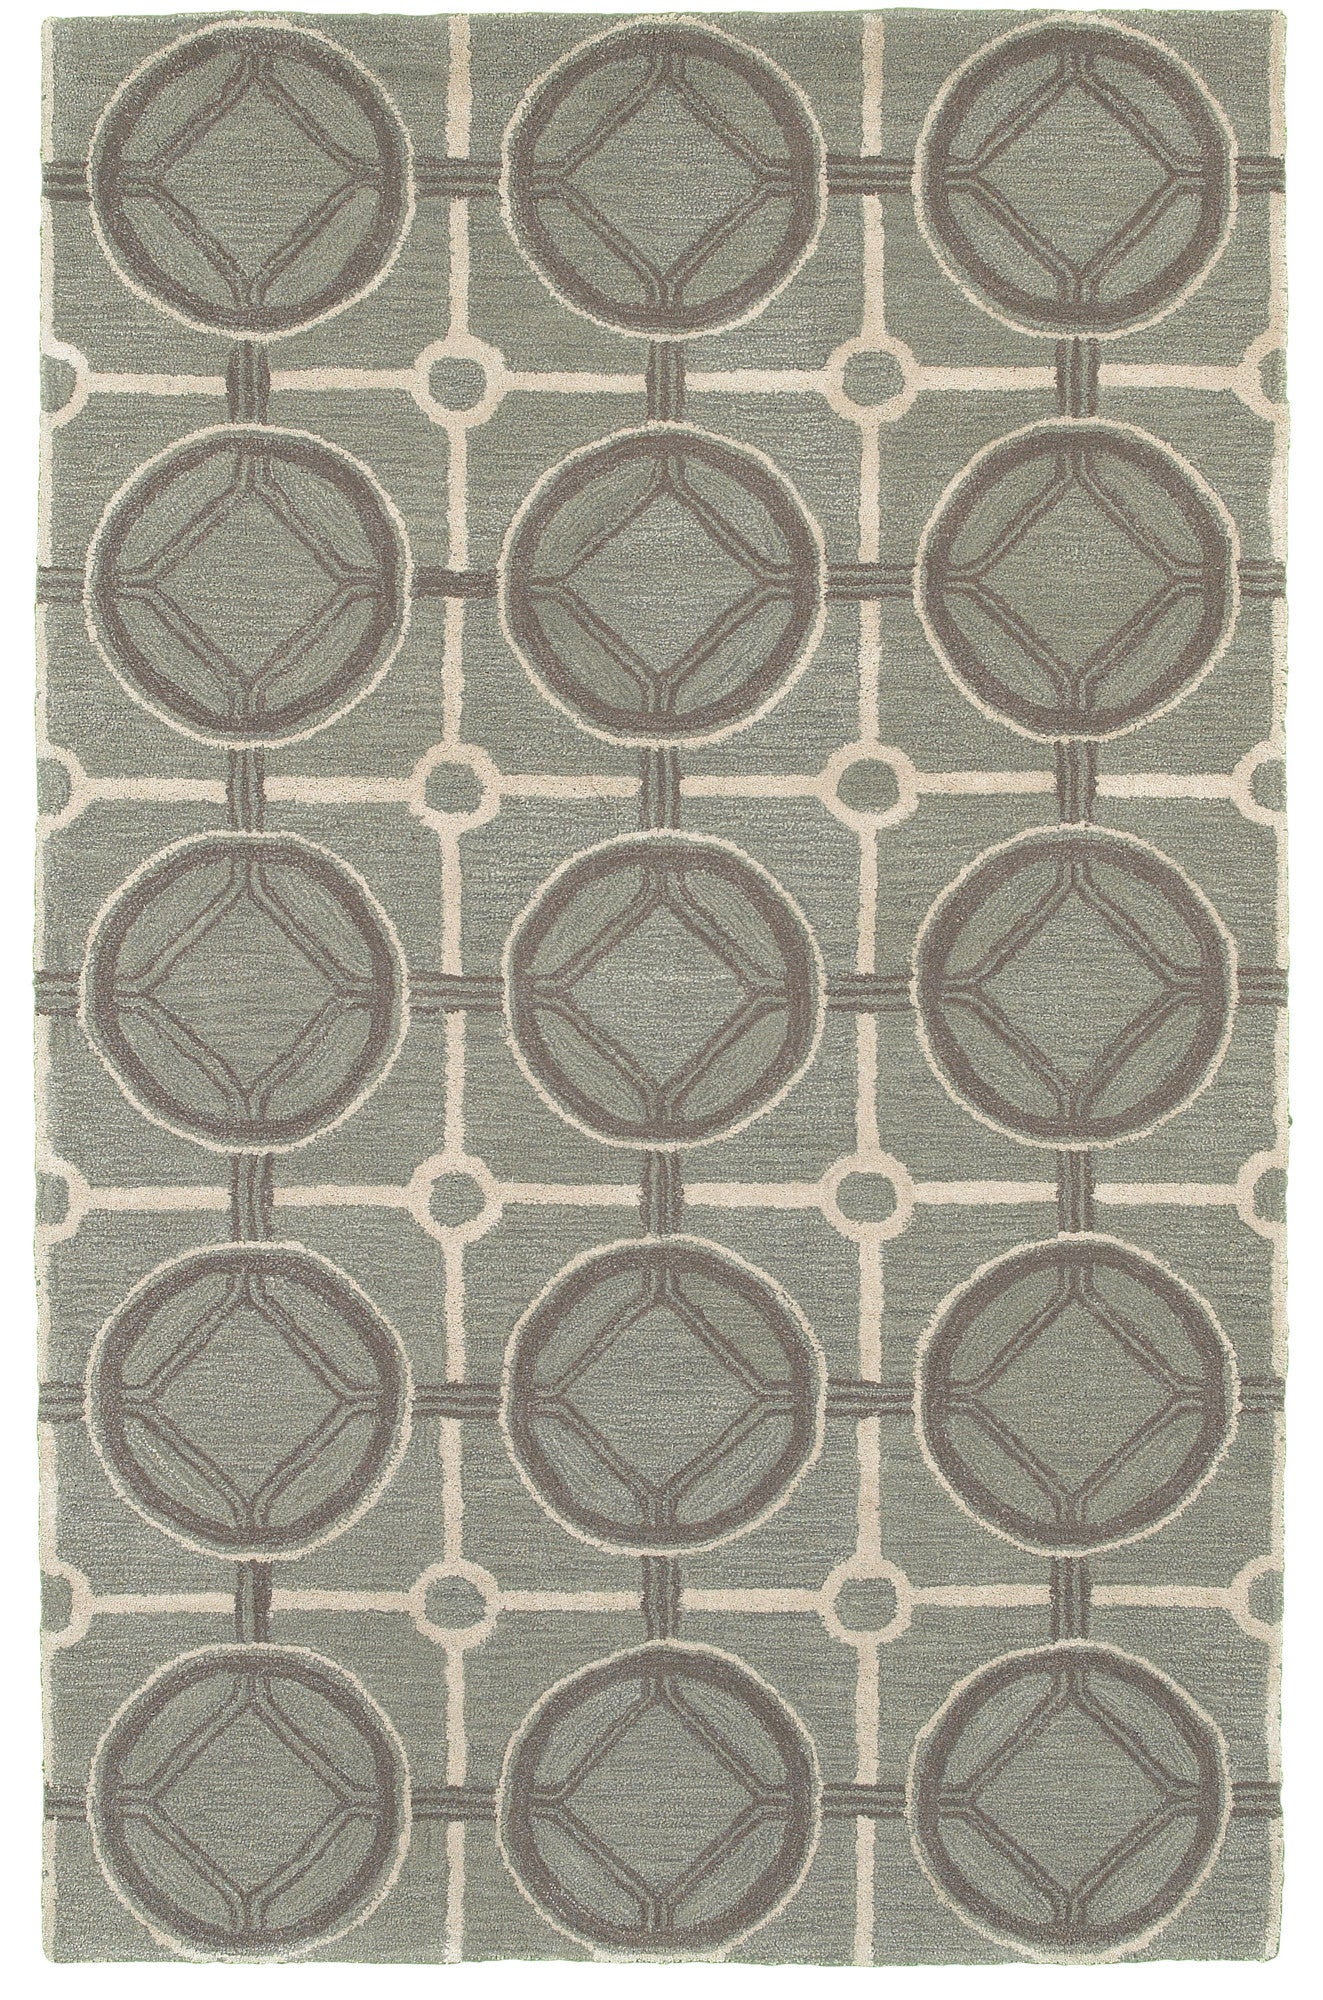 LR Resources Luxor 03850 Smoke Blue Area Rug